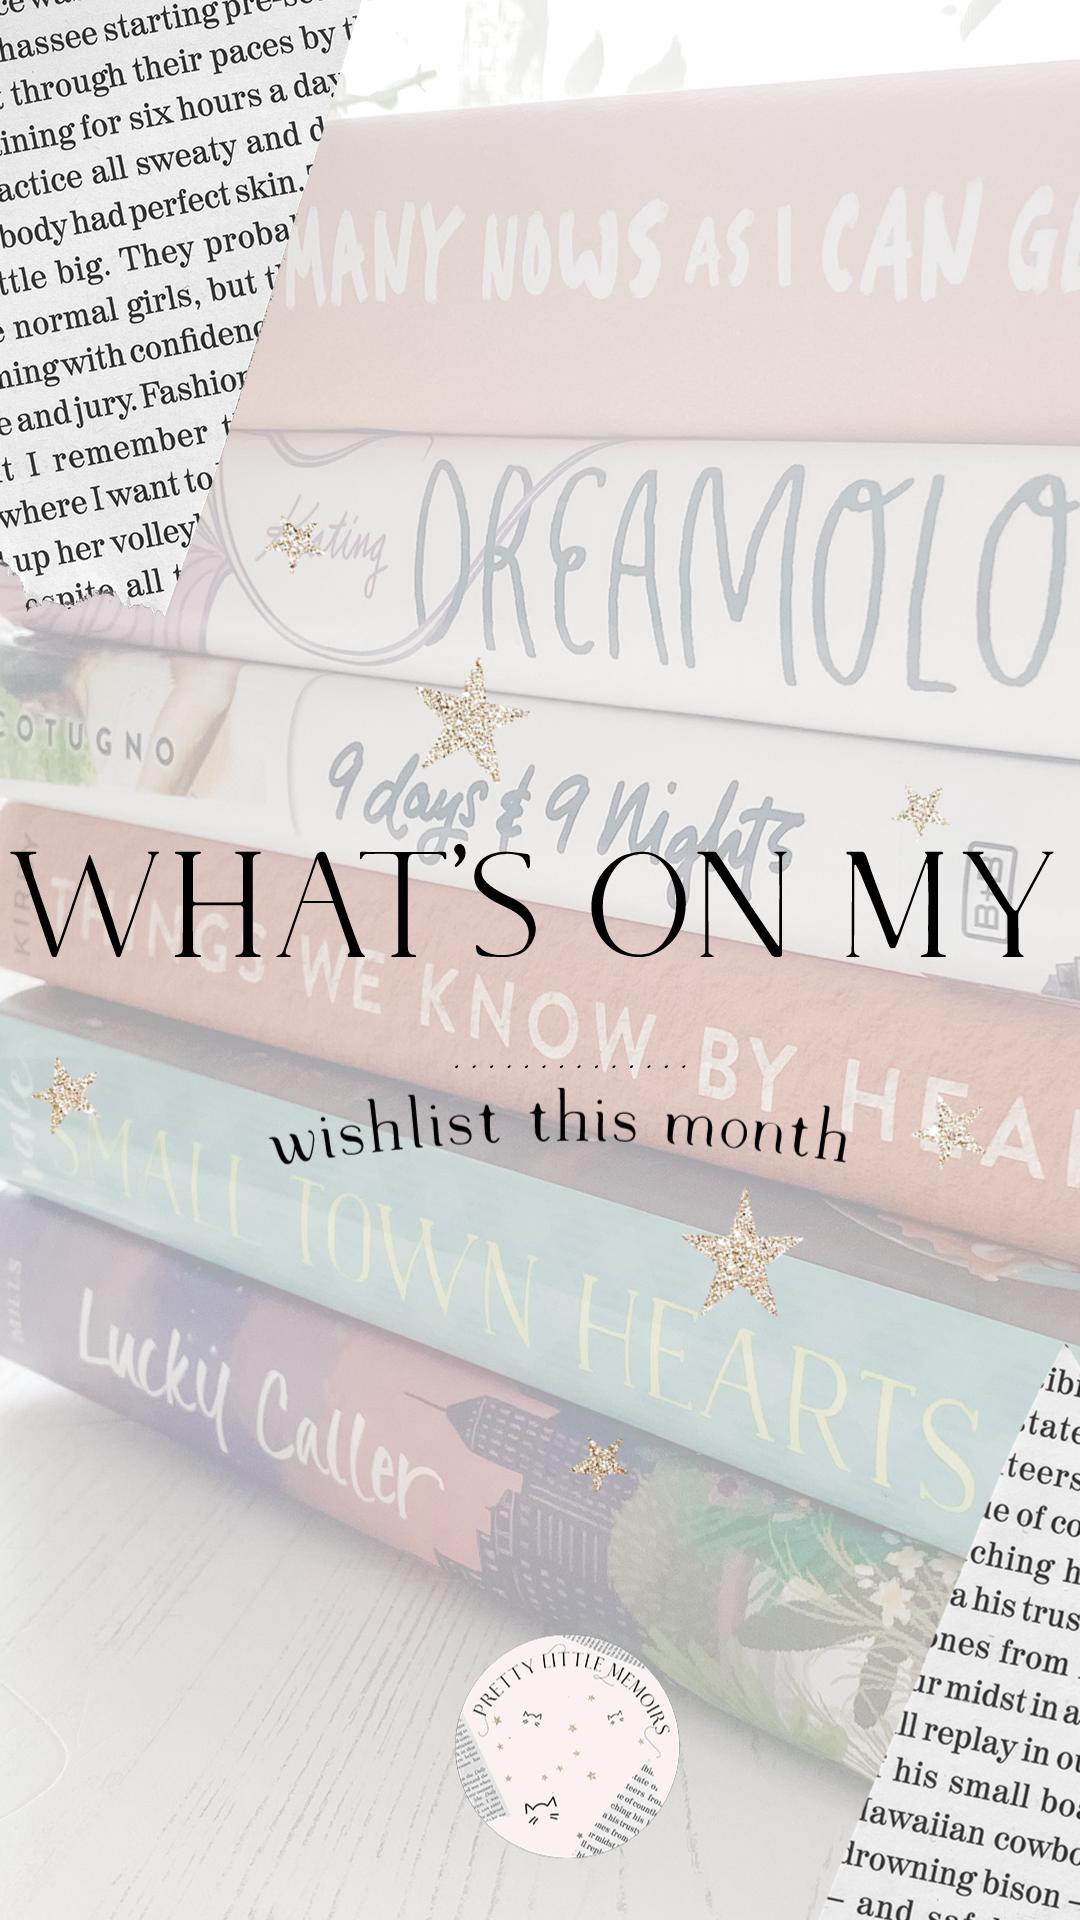 What's On My Wishlist: June 2020